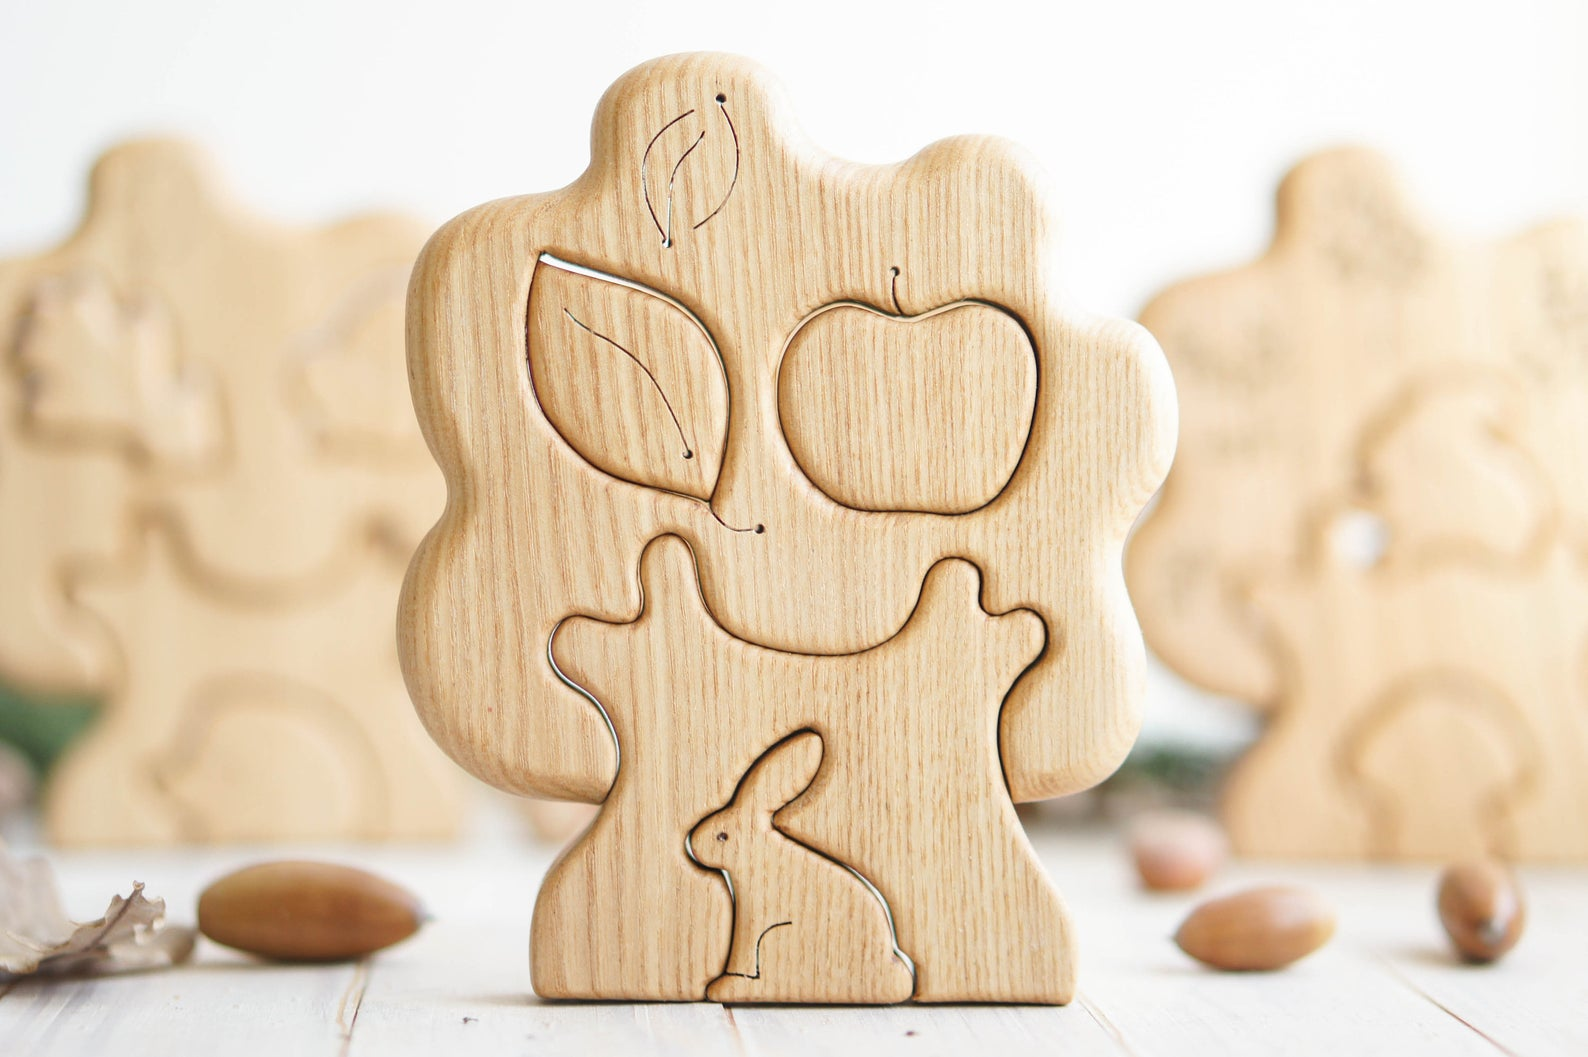 tree and rabbit wooden puzzle